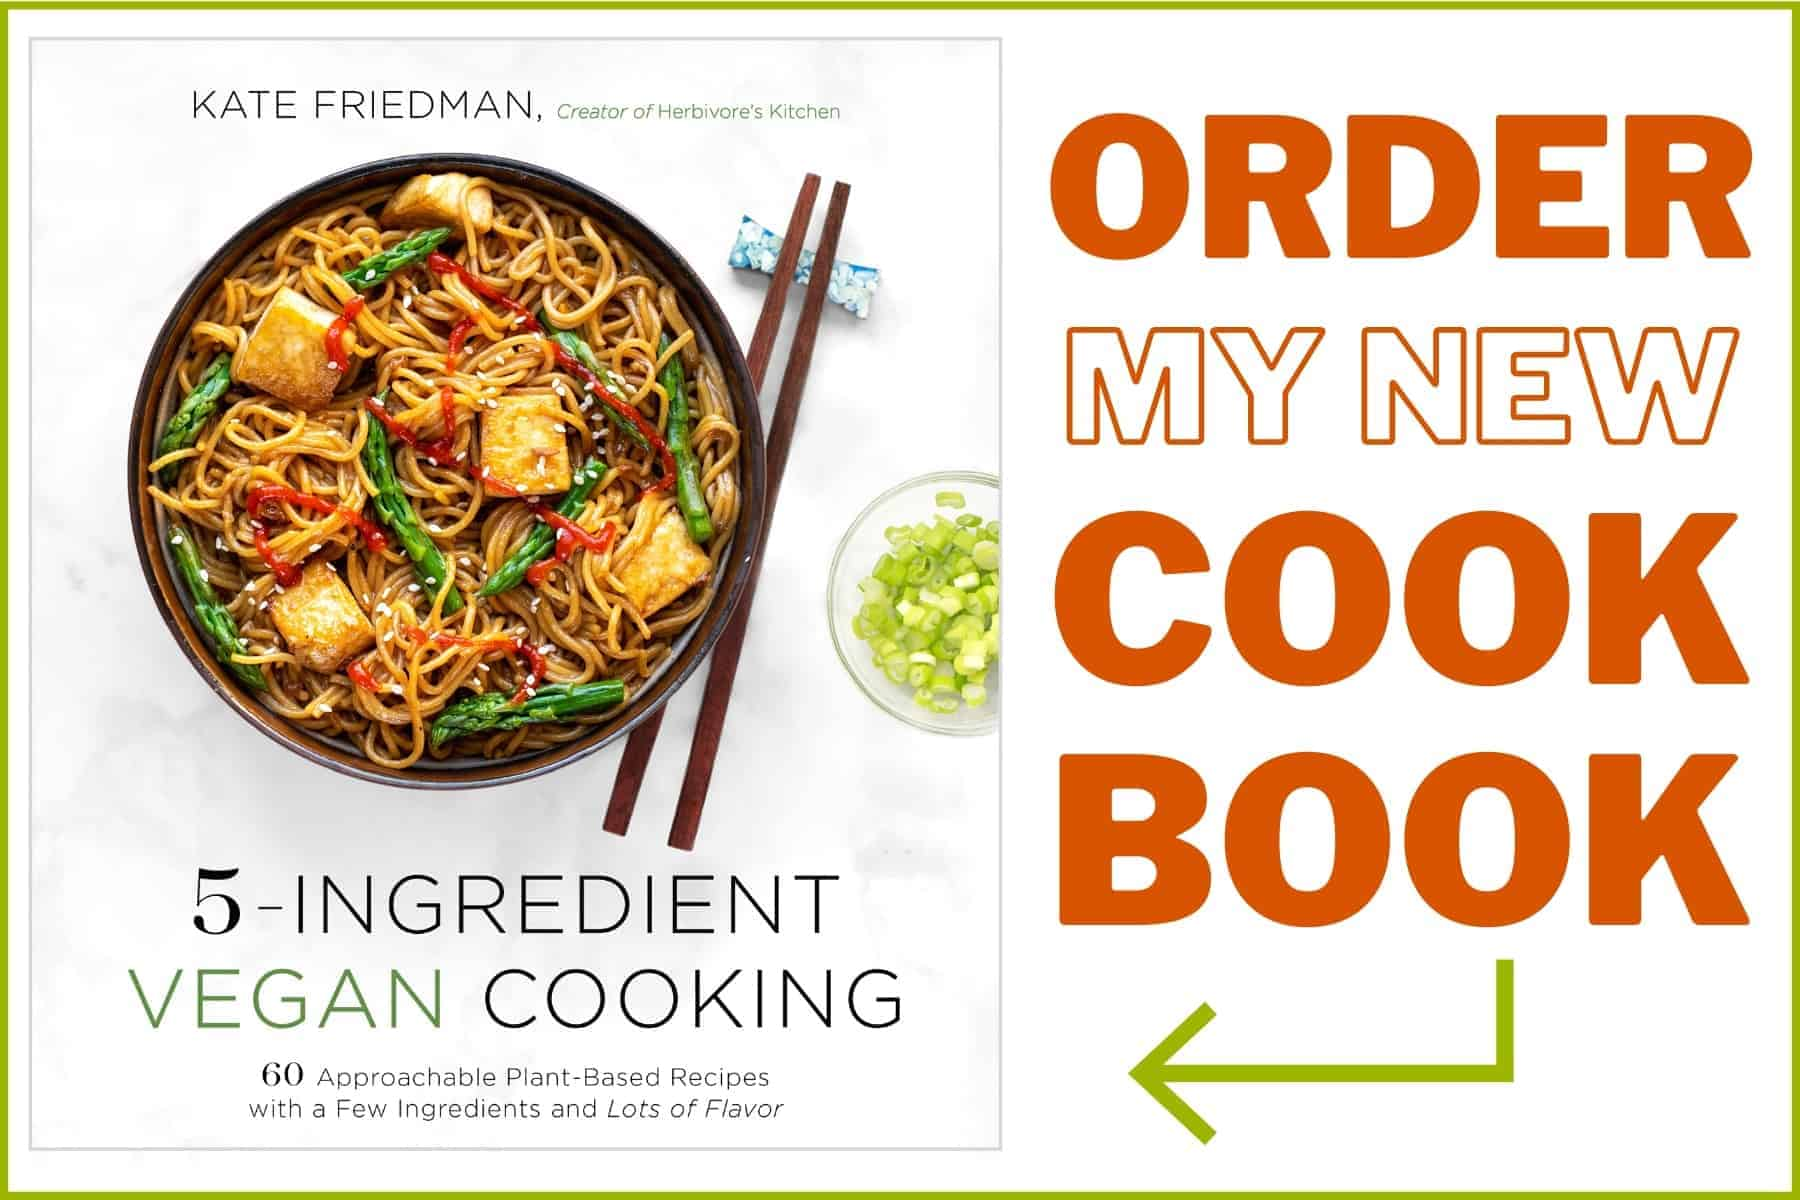 Order 5-Ingredient Vegan Cooking Cookbook